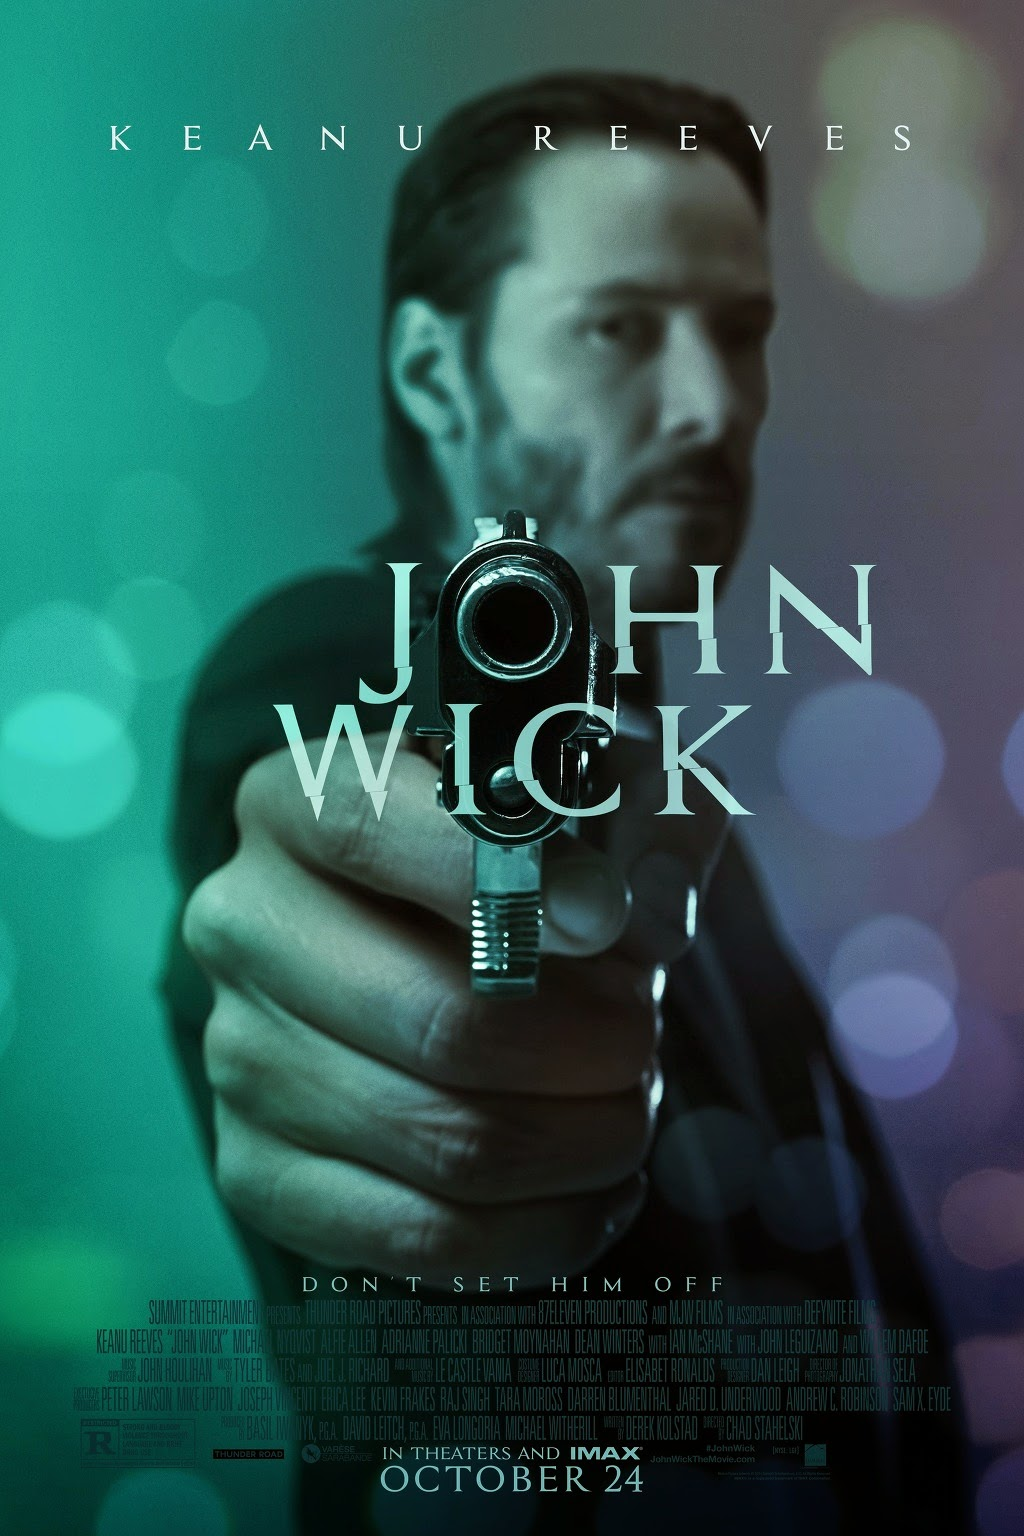 John Wick: Keanu Reeves stars in Derek Kolstad's story - directed by Chad Stahelski's | A Constantly Racing Mind